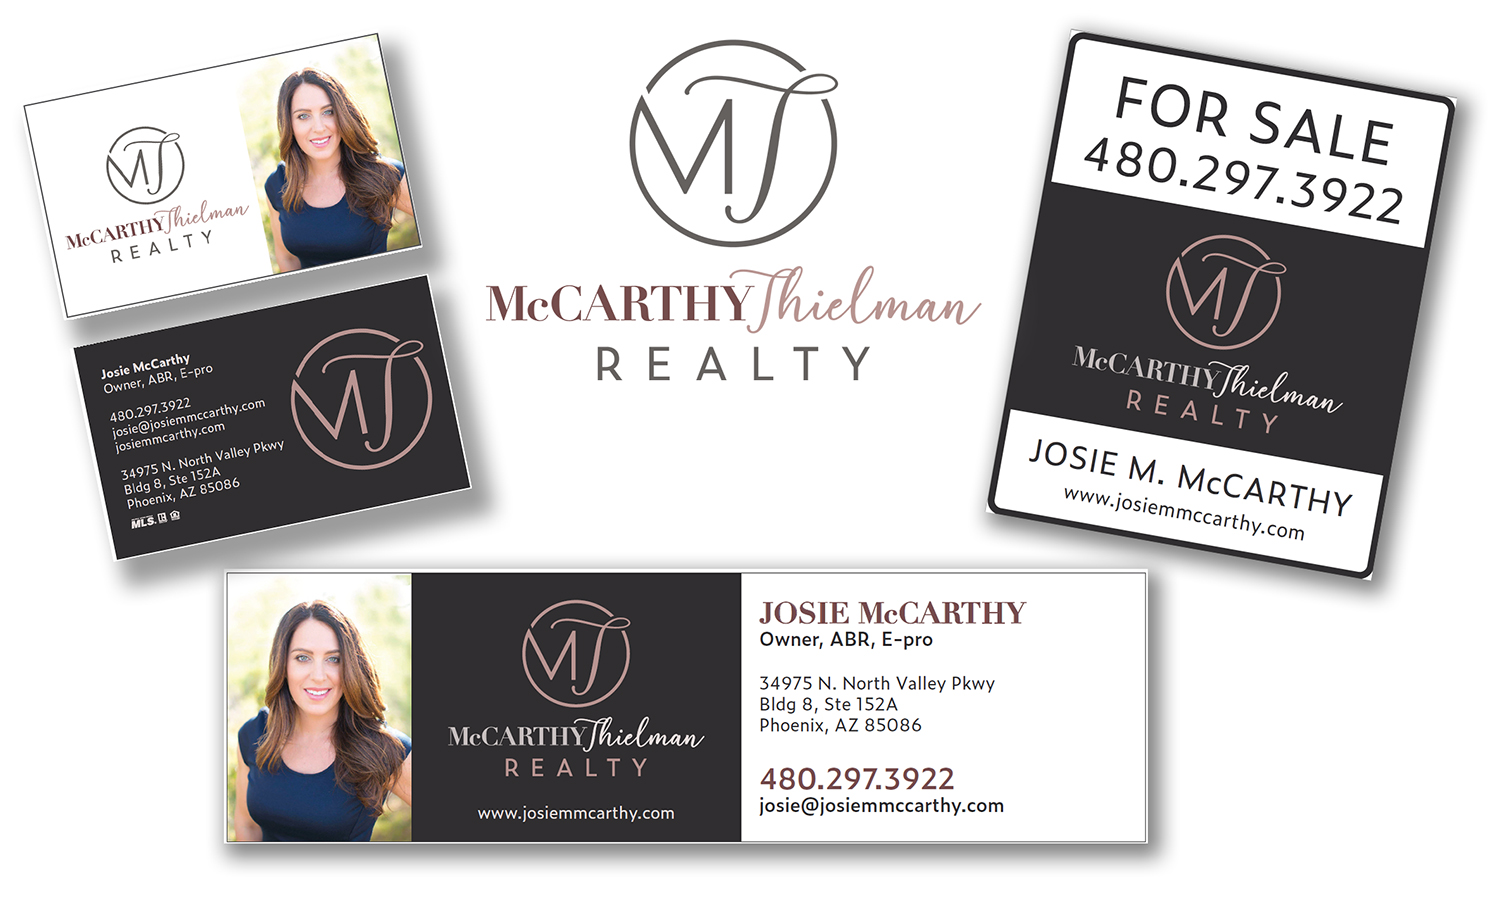 Graphic Design Brand Identity for McCarthy Thielman Realty in Phoenix, AZ